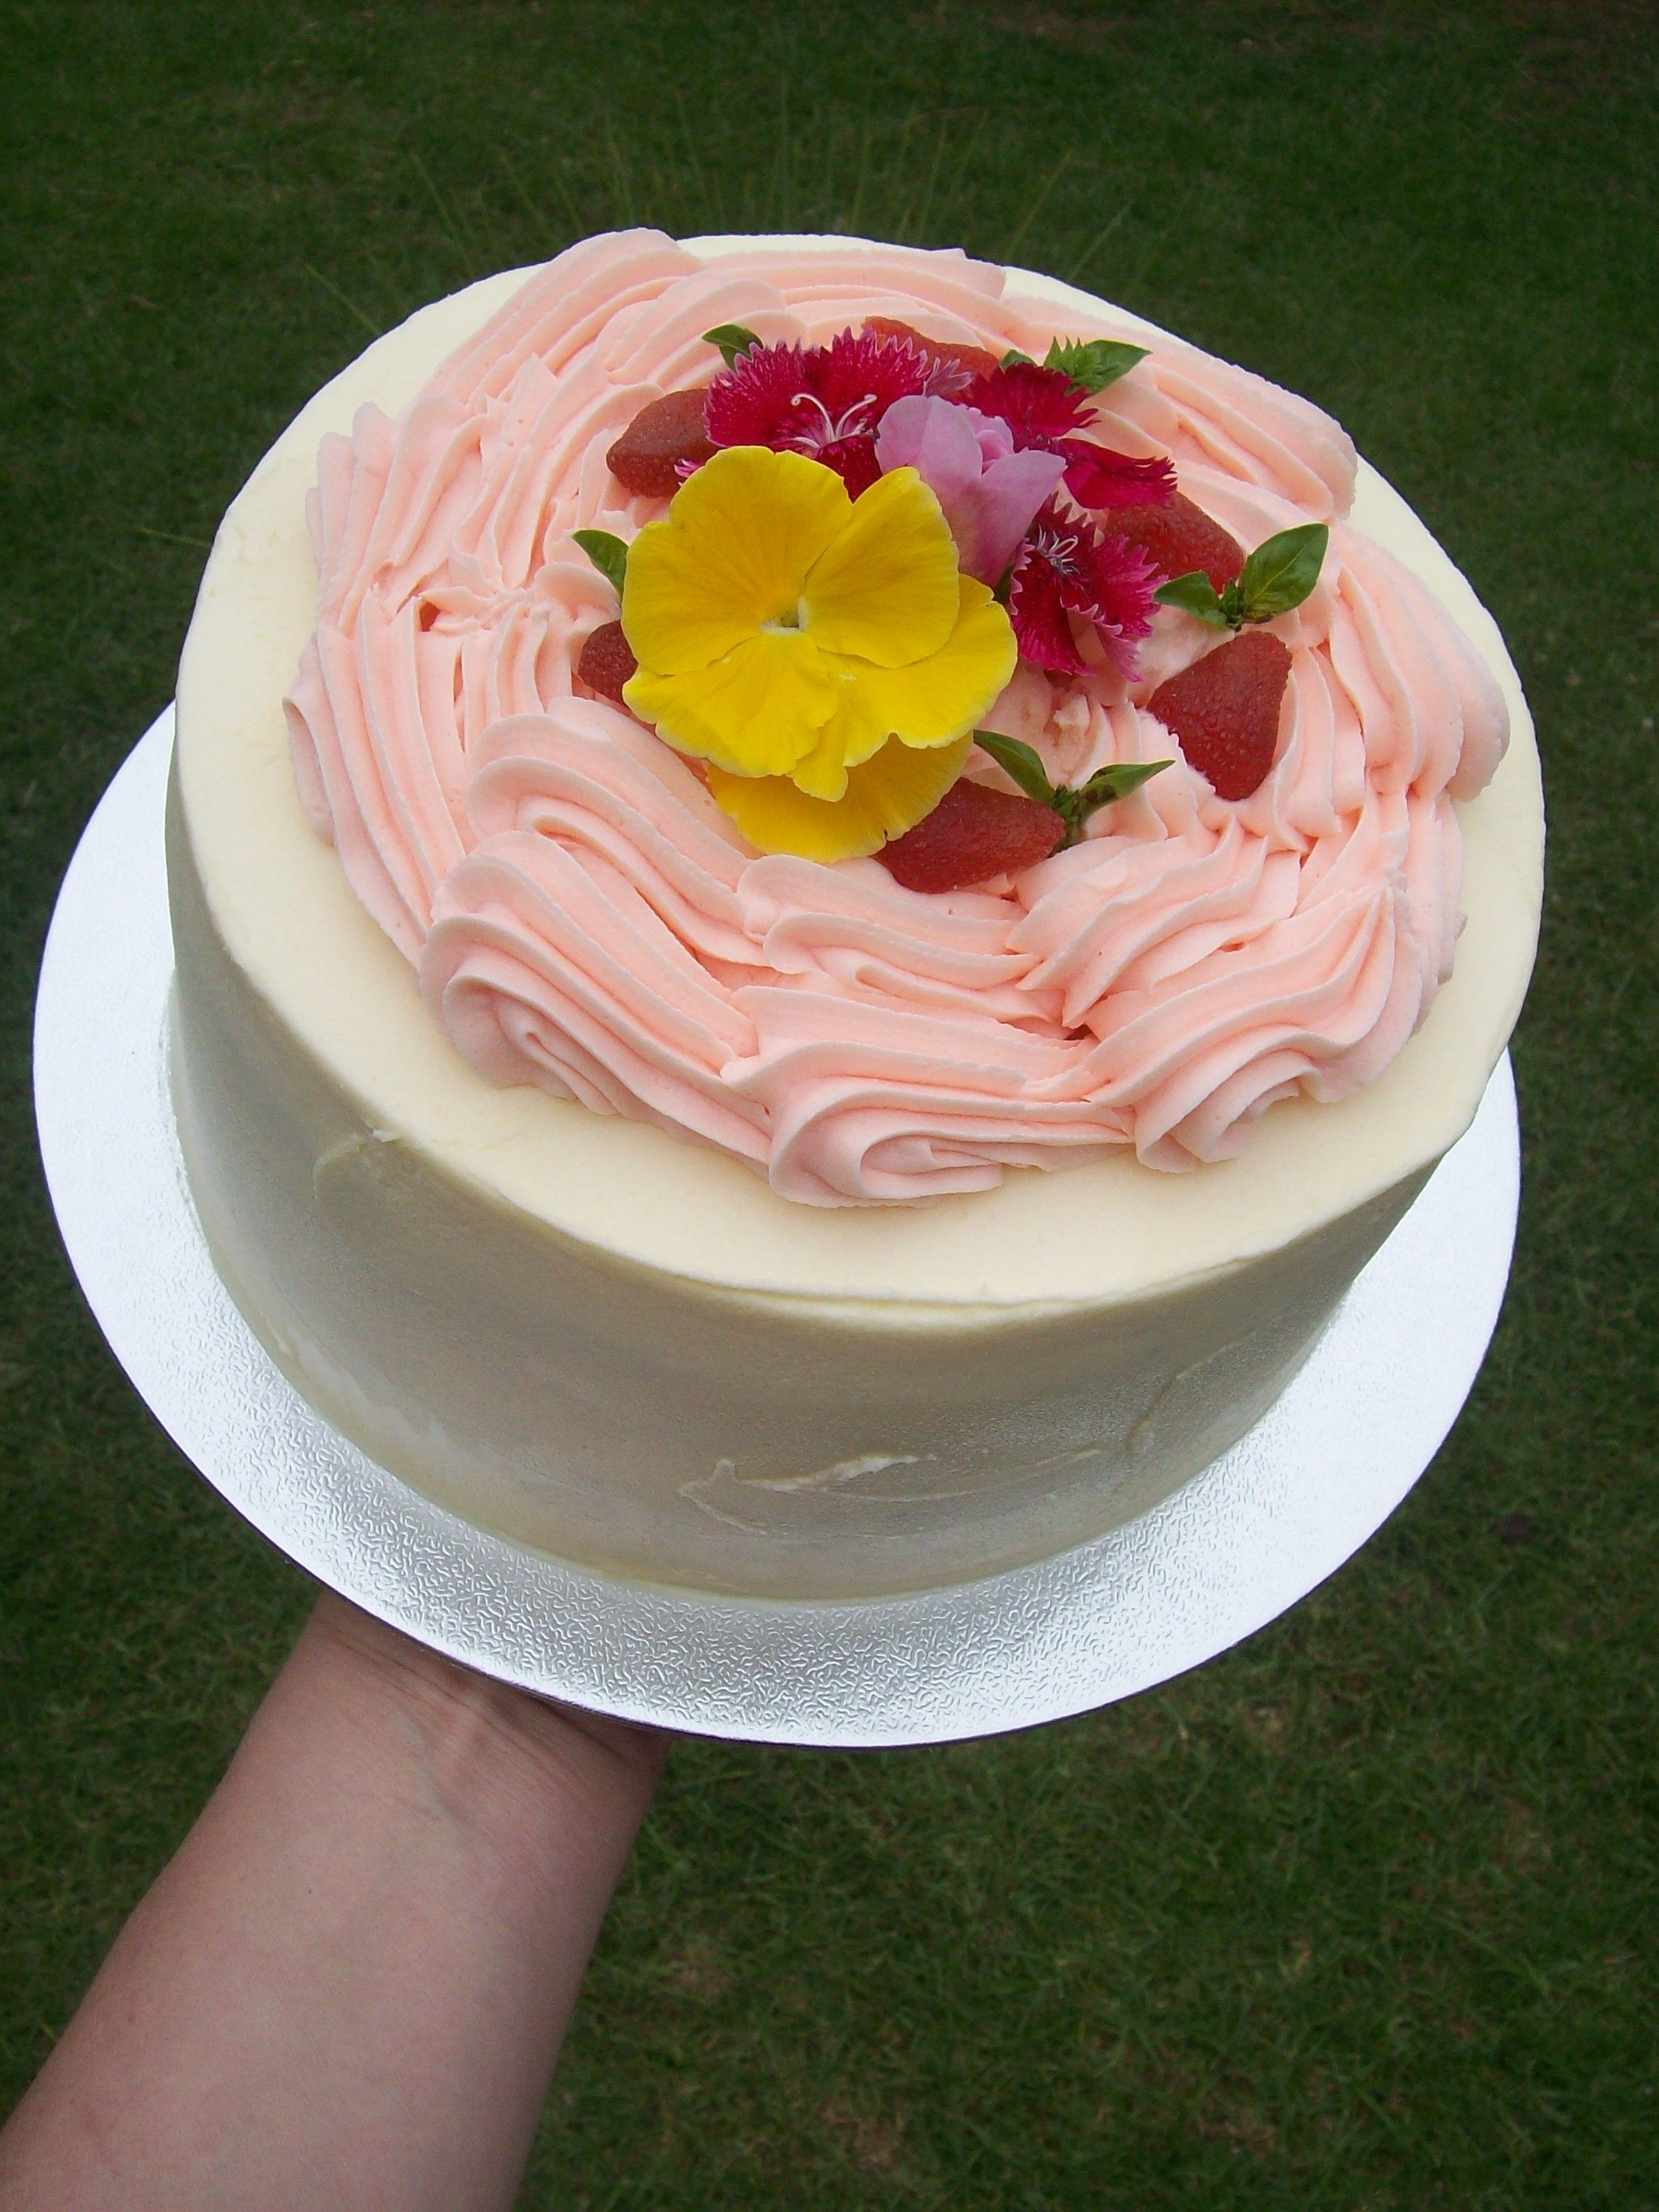 Buttercream Birthday Cakes Auckland 85 Flowers May Vary 21st